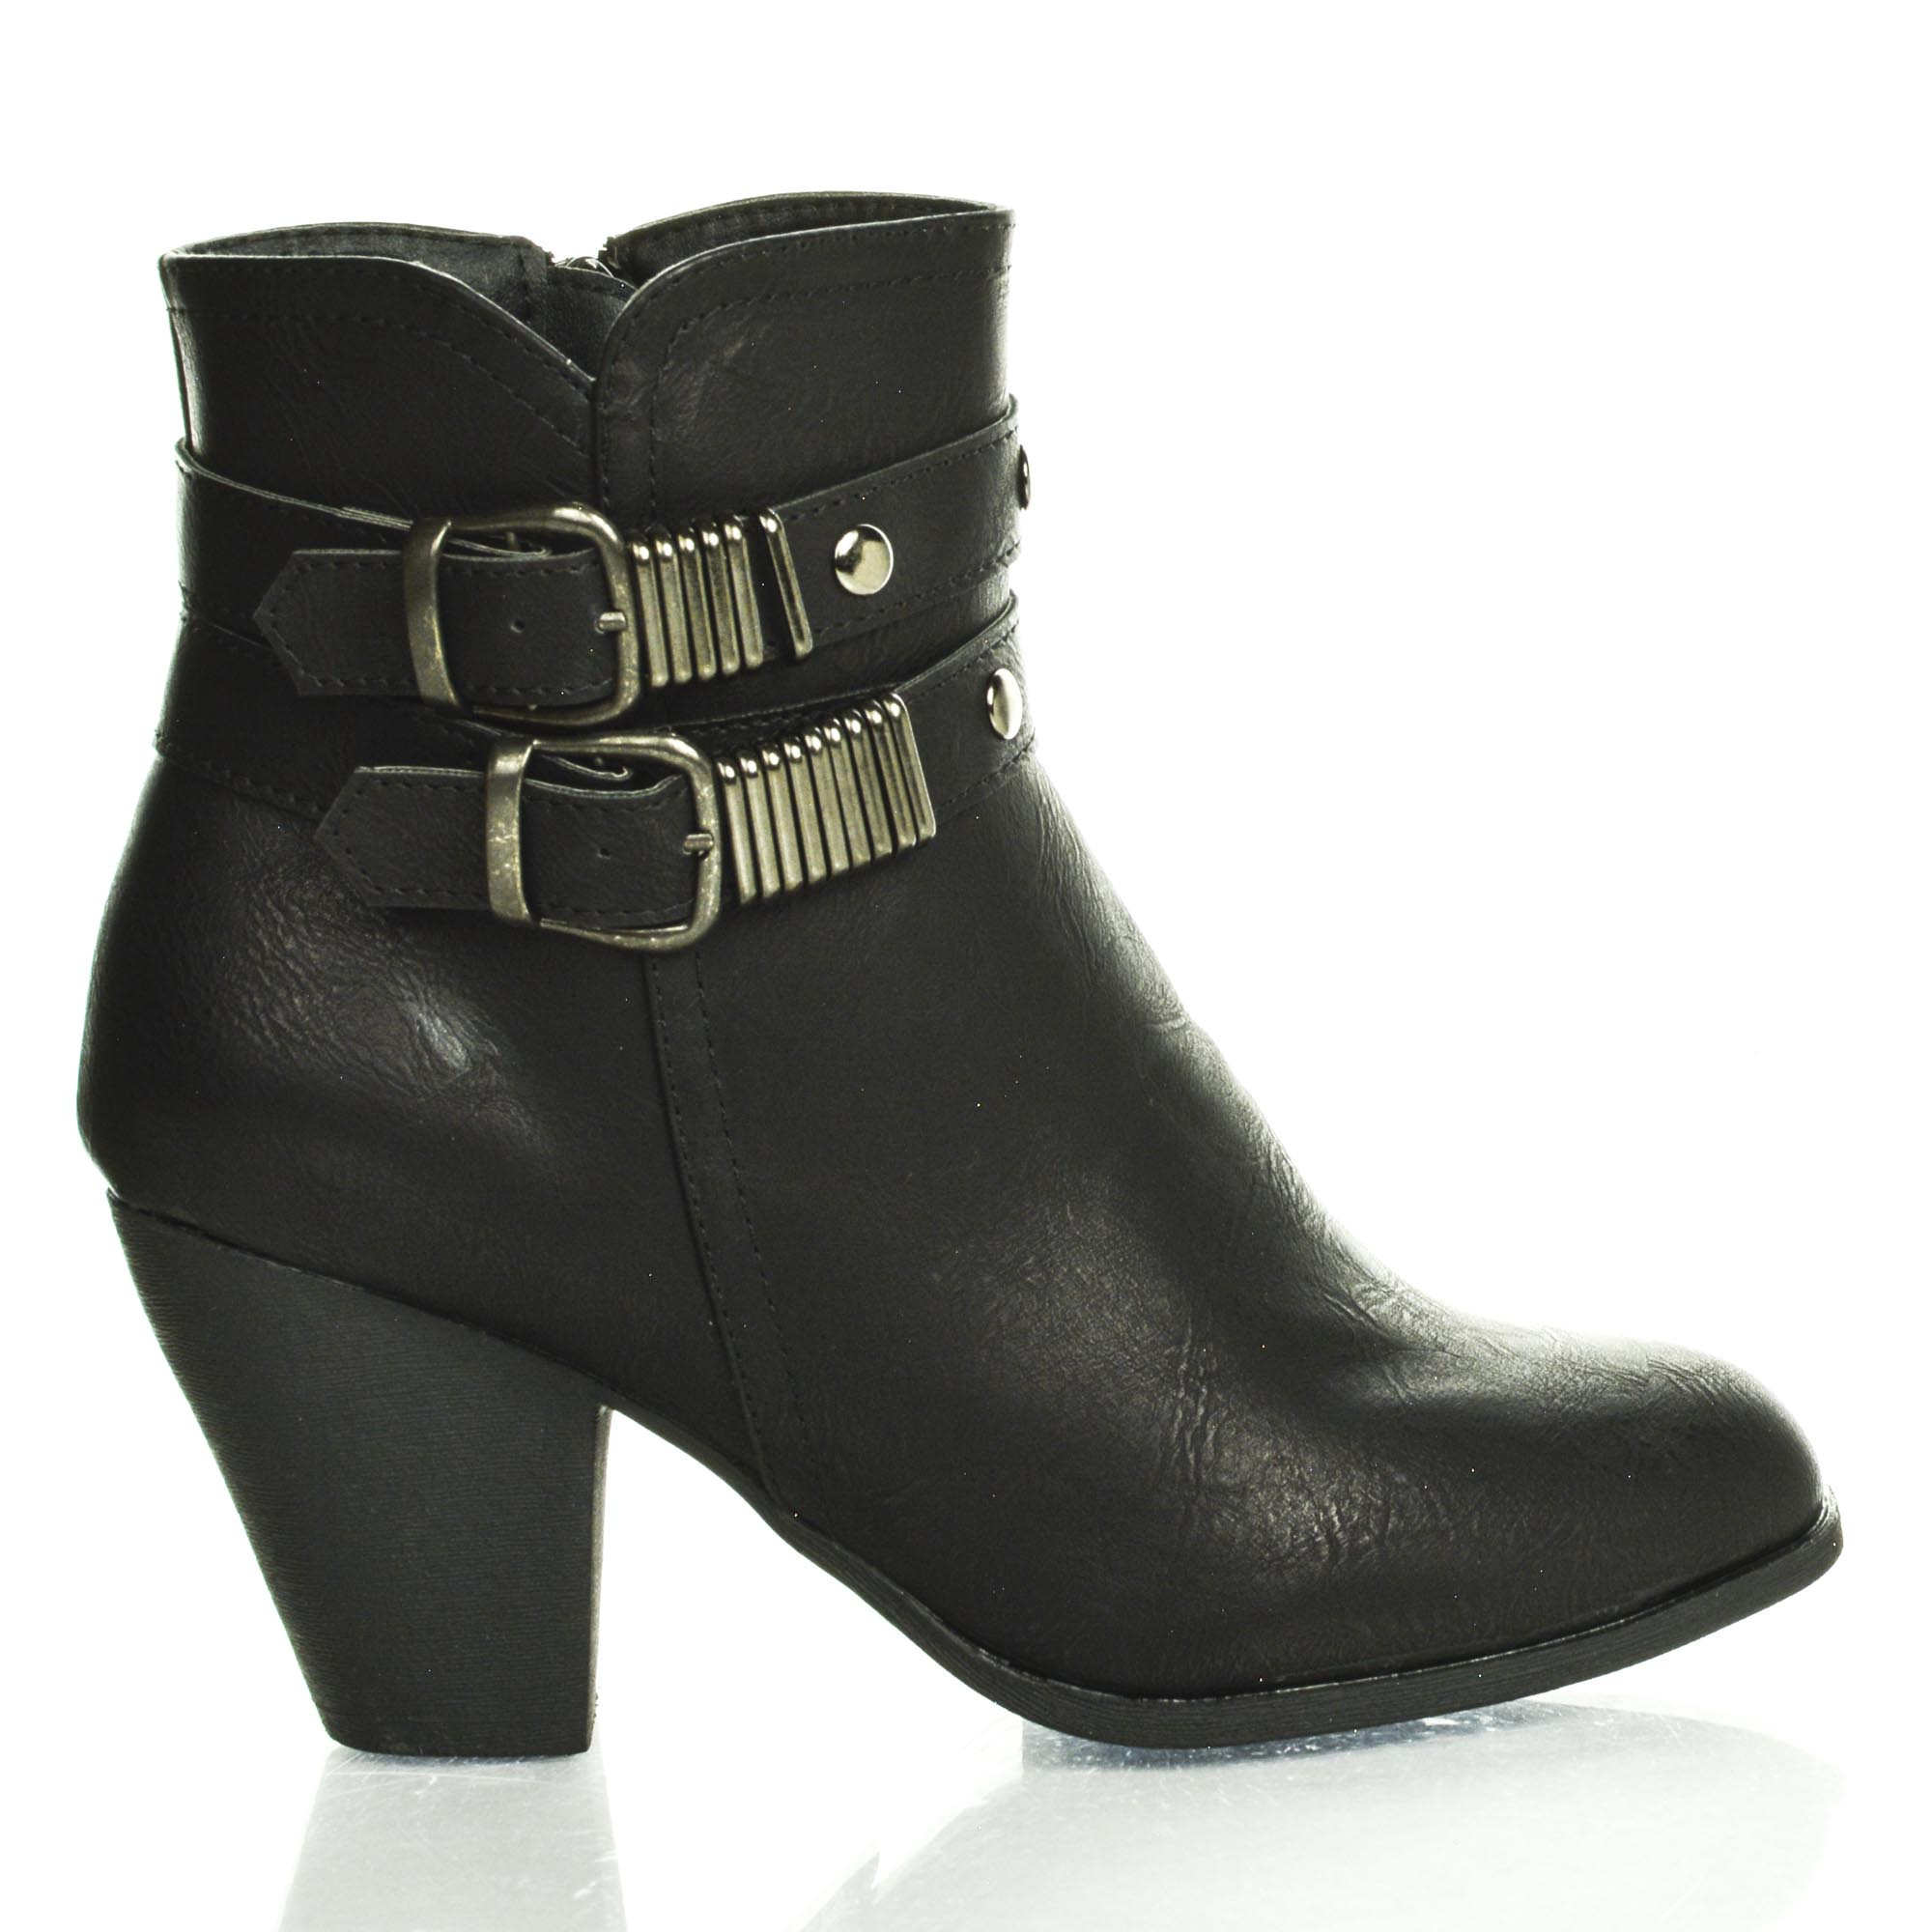 Raven1D by DbDk, Almond Toe Double Antique Buckle Zip Up Block Heel Ankle Boots